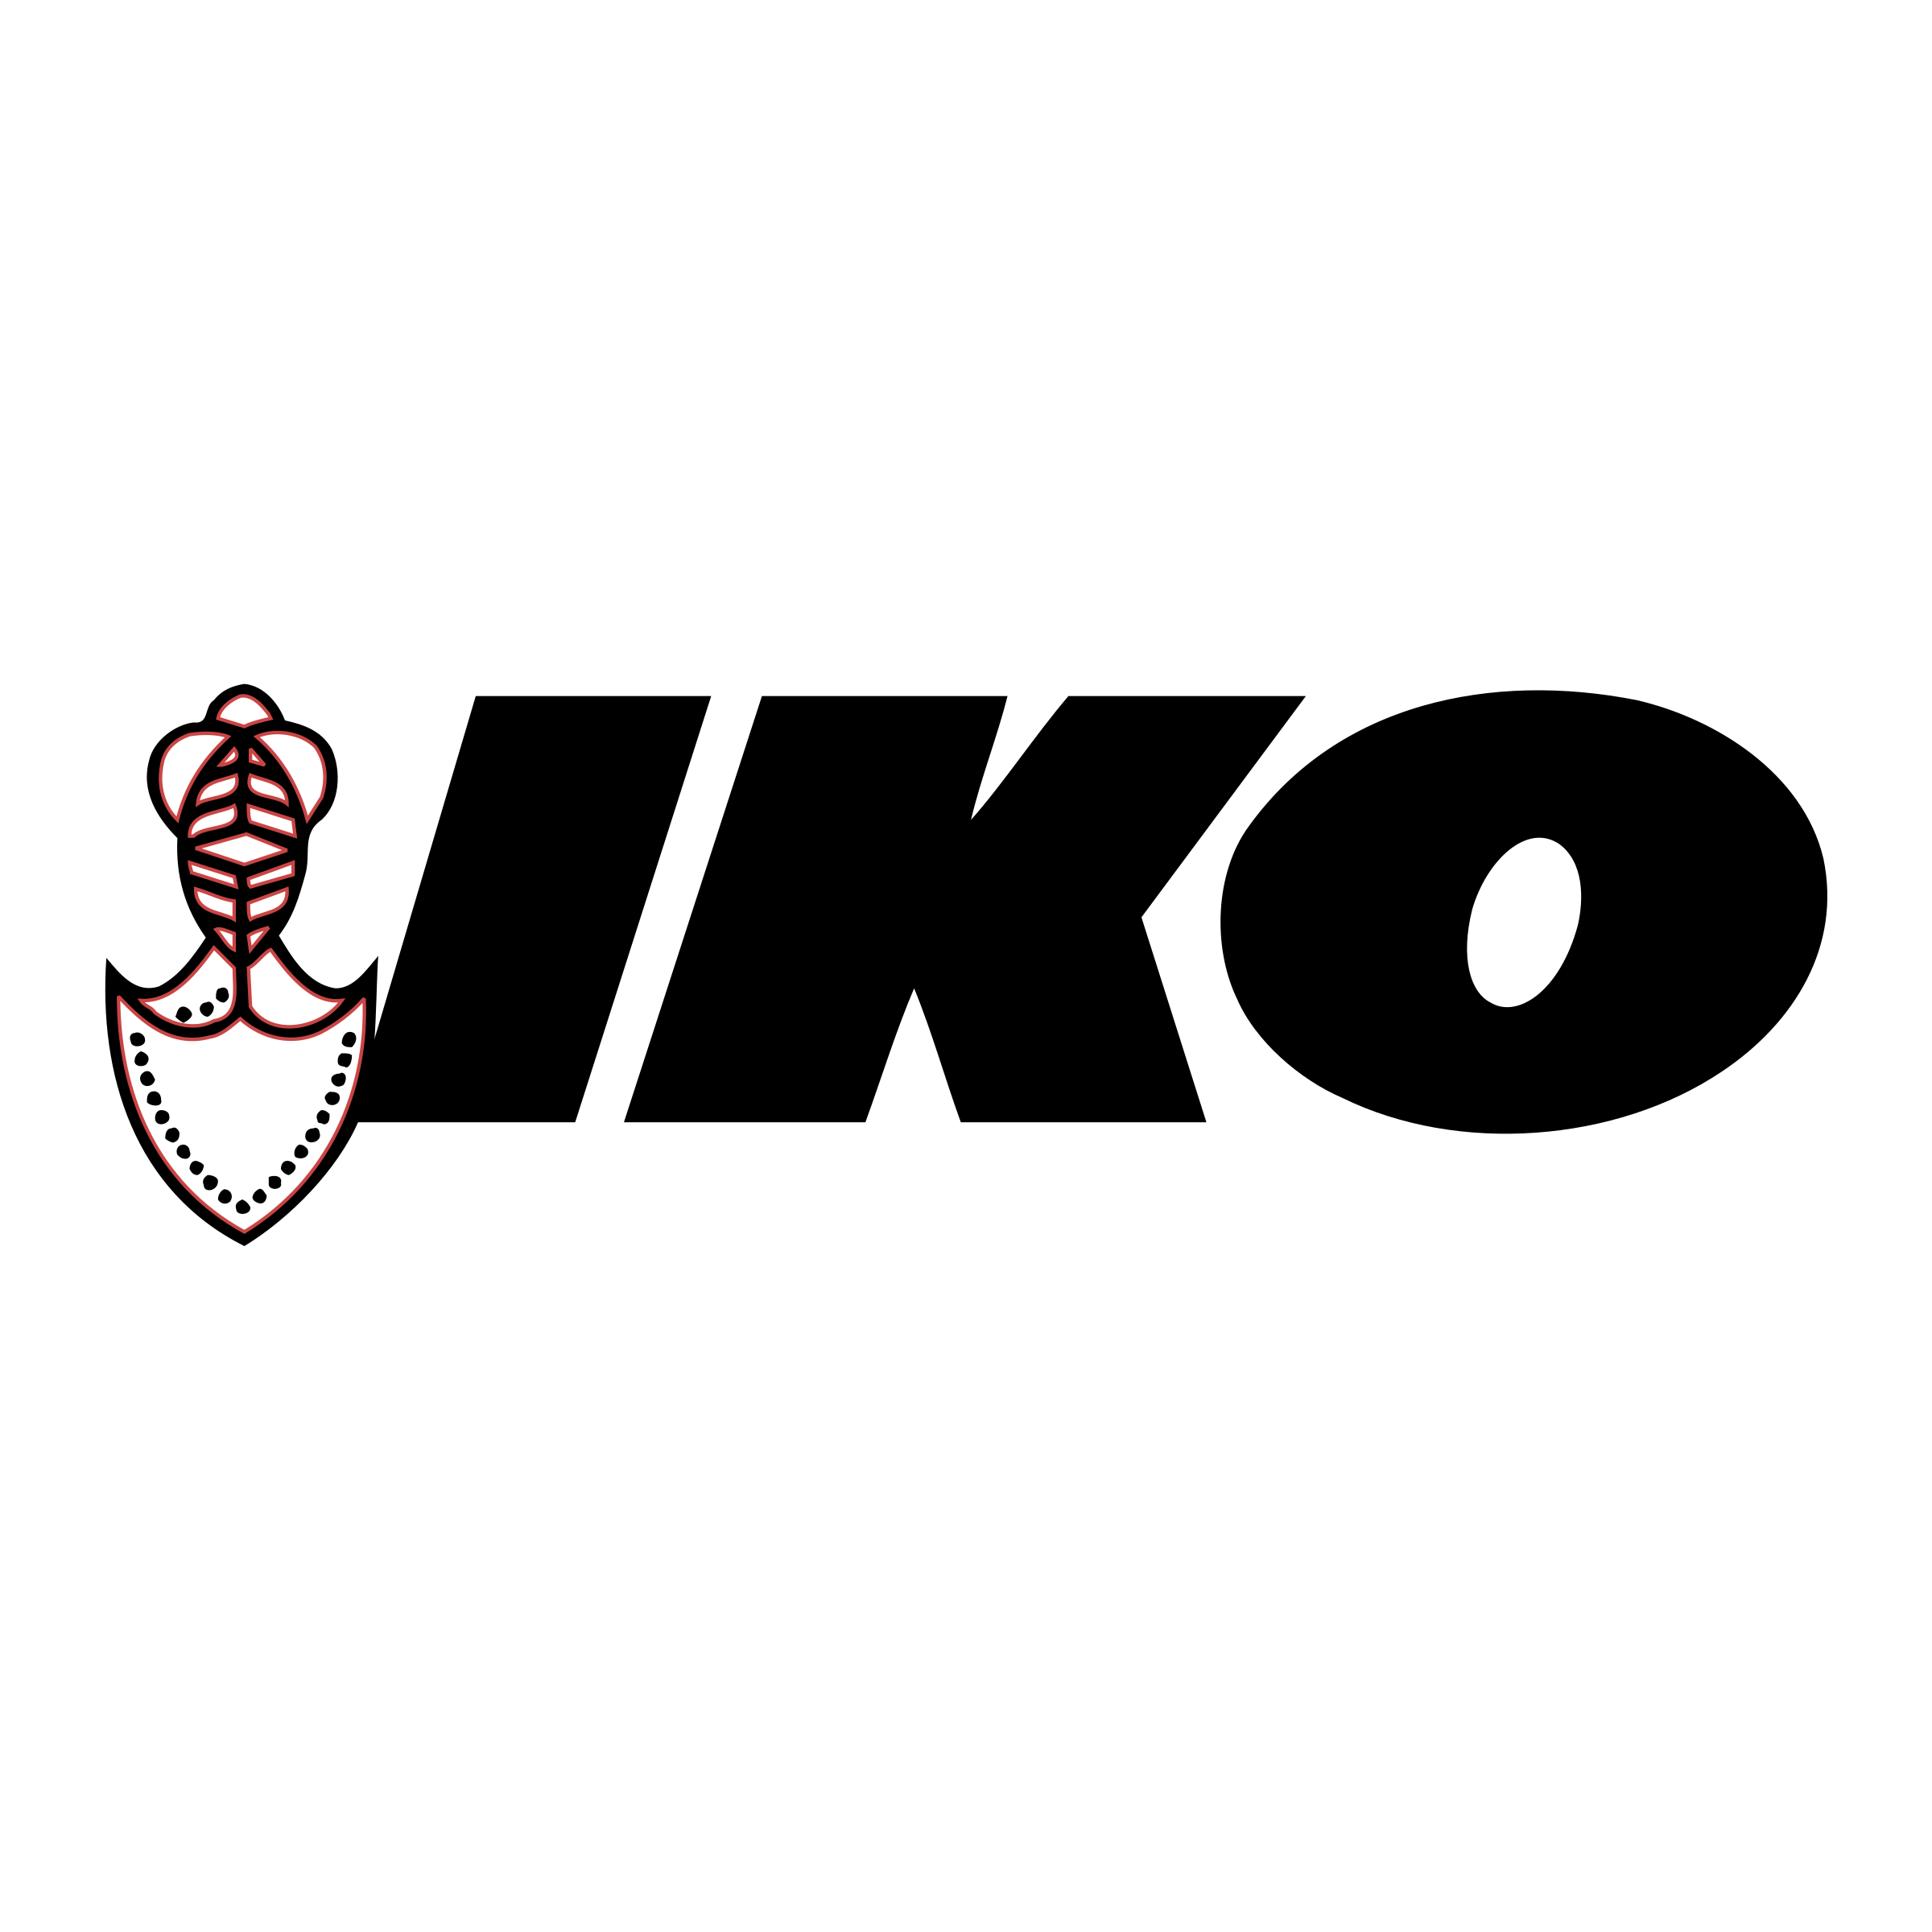 iko-1-logo-png-transparent